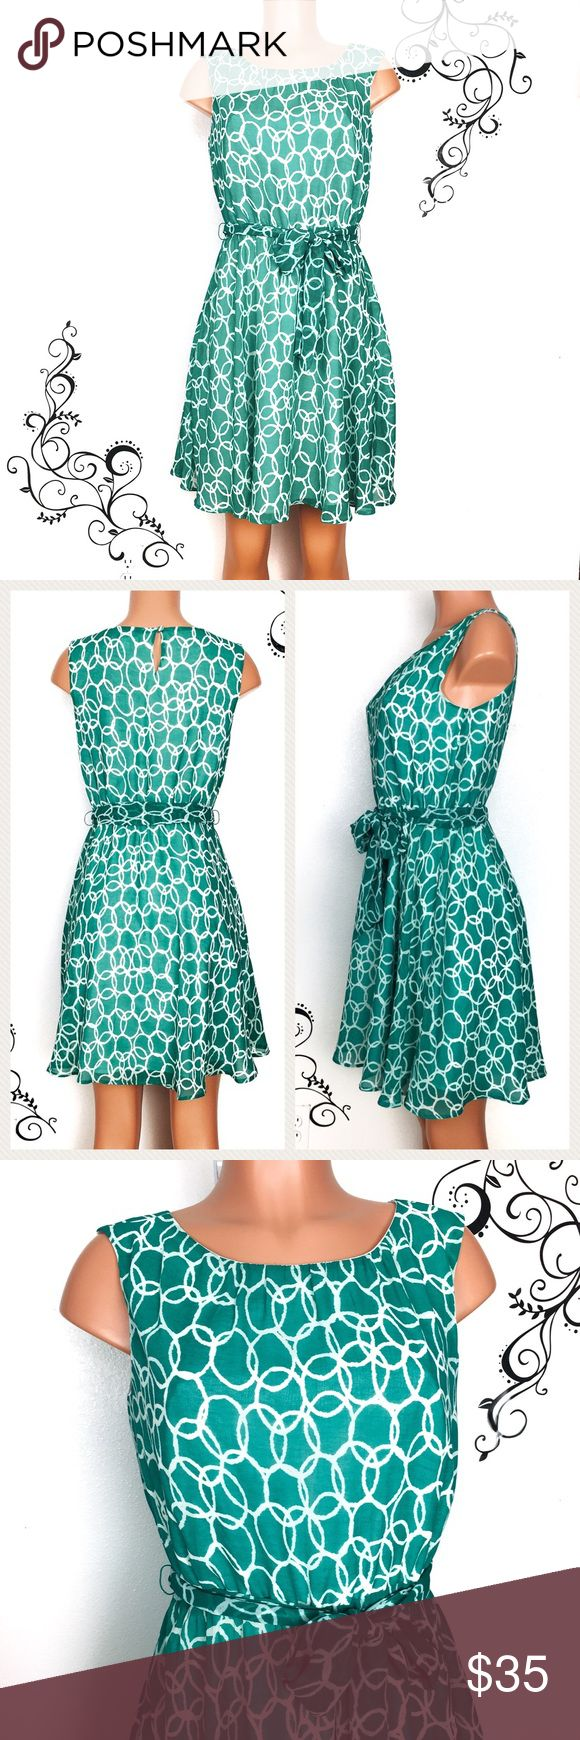 """BANANA REPUBLIC circle print green chiffon dress Really cute circle print fit and flare sleeveless dress from Banana Republic.  Has matching sash tie, keyhole button on back, light flowy chiffon fabric, fully lined.  Perfect for work or any special occasion.   Condition: nwot, no visible flaws found, excellent condition.  Size:6P Chest: 17 inches across  Waist: stretches 14-18"""" Length: 35"""" Fabric: polyester  🚫trade Banana Republic Dresses"""